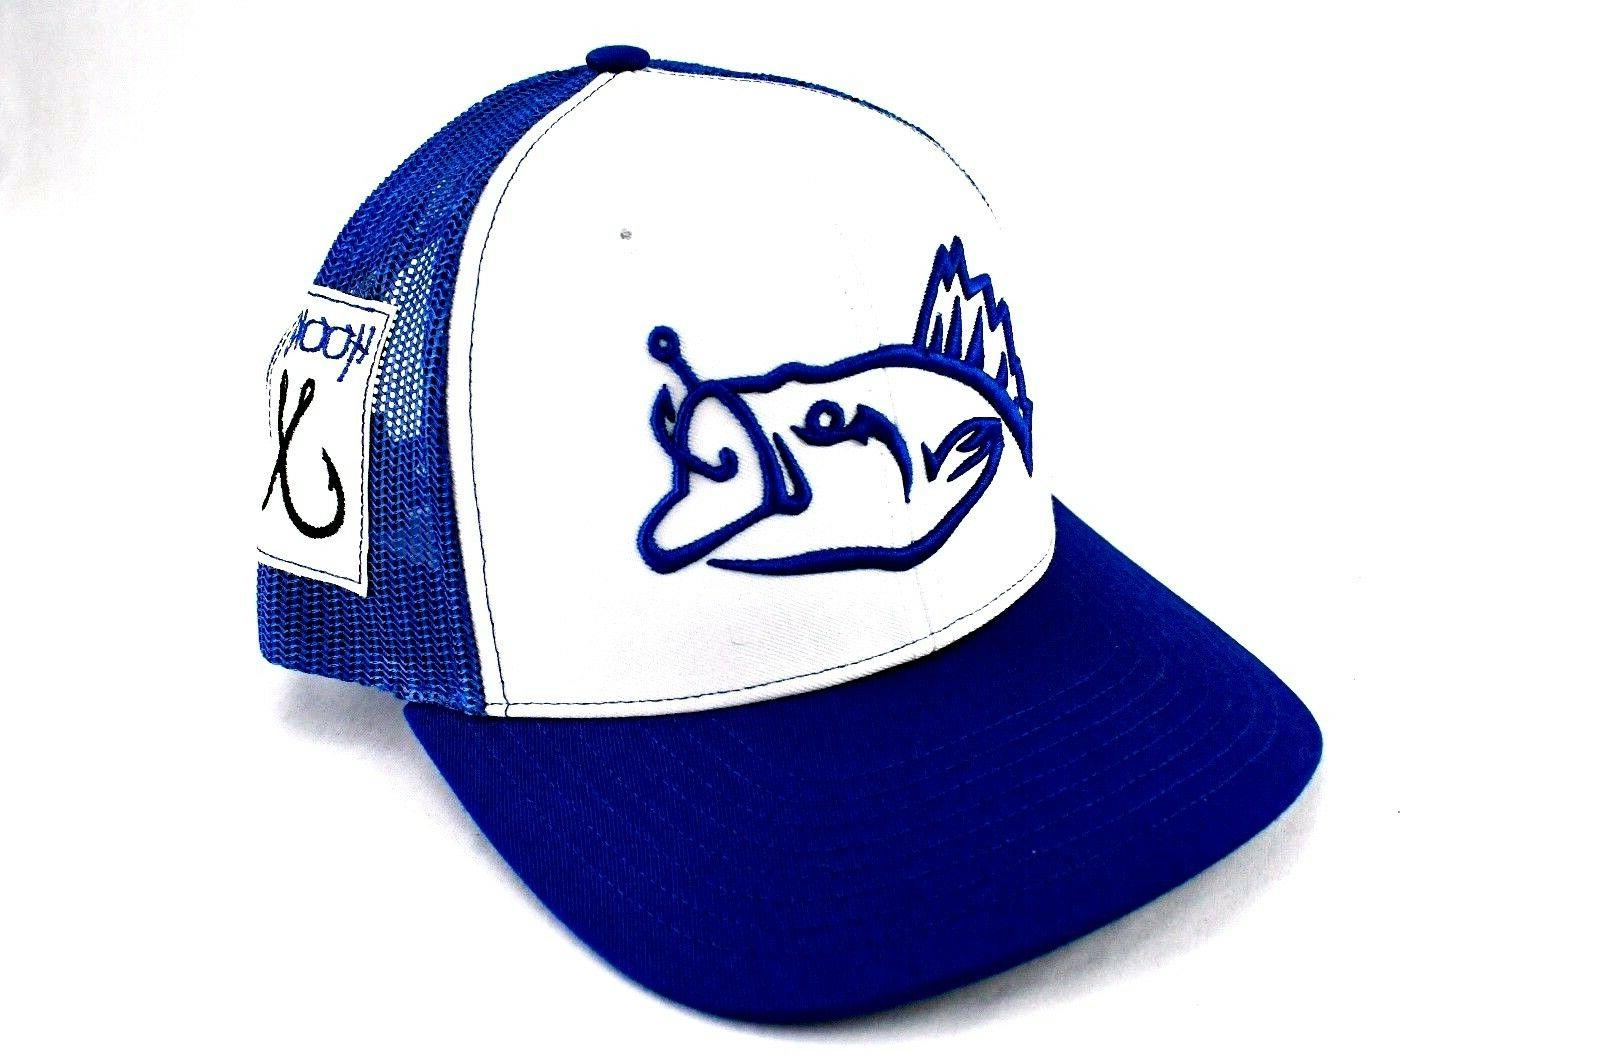 fishing hat MAD Hooked Fishing Fish Gone Outdoor Sports Base